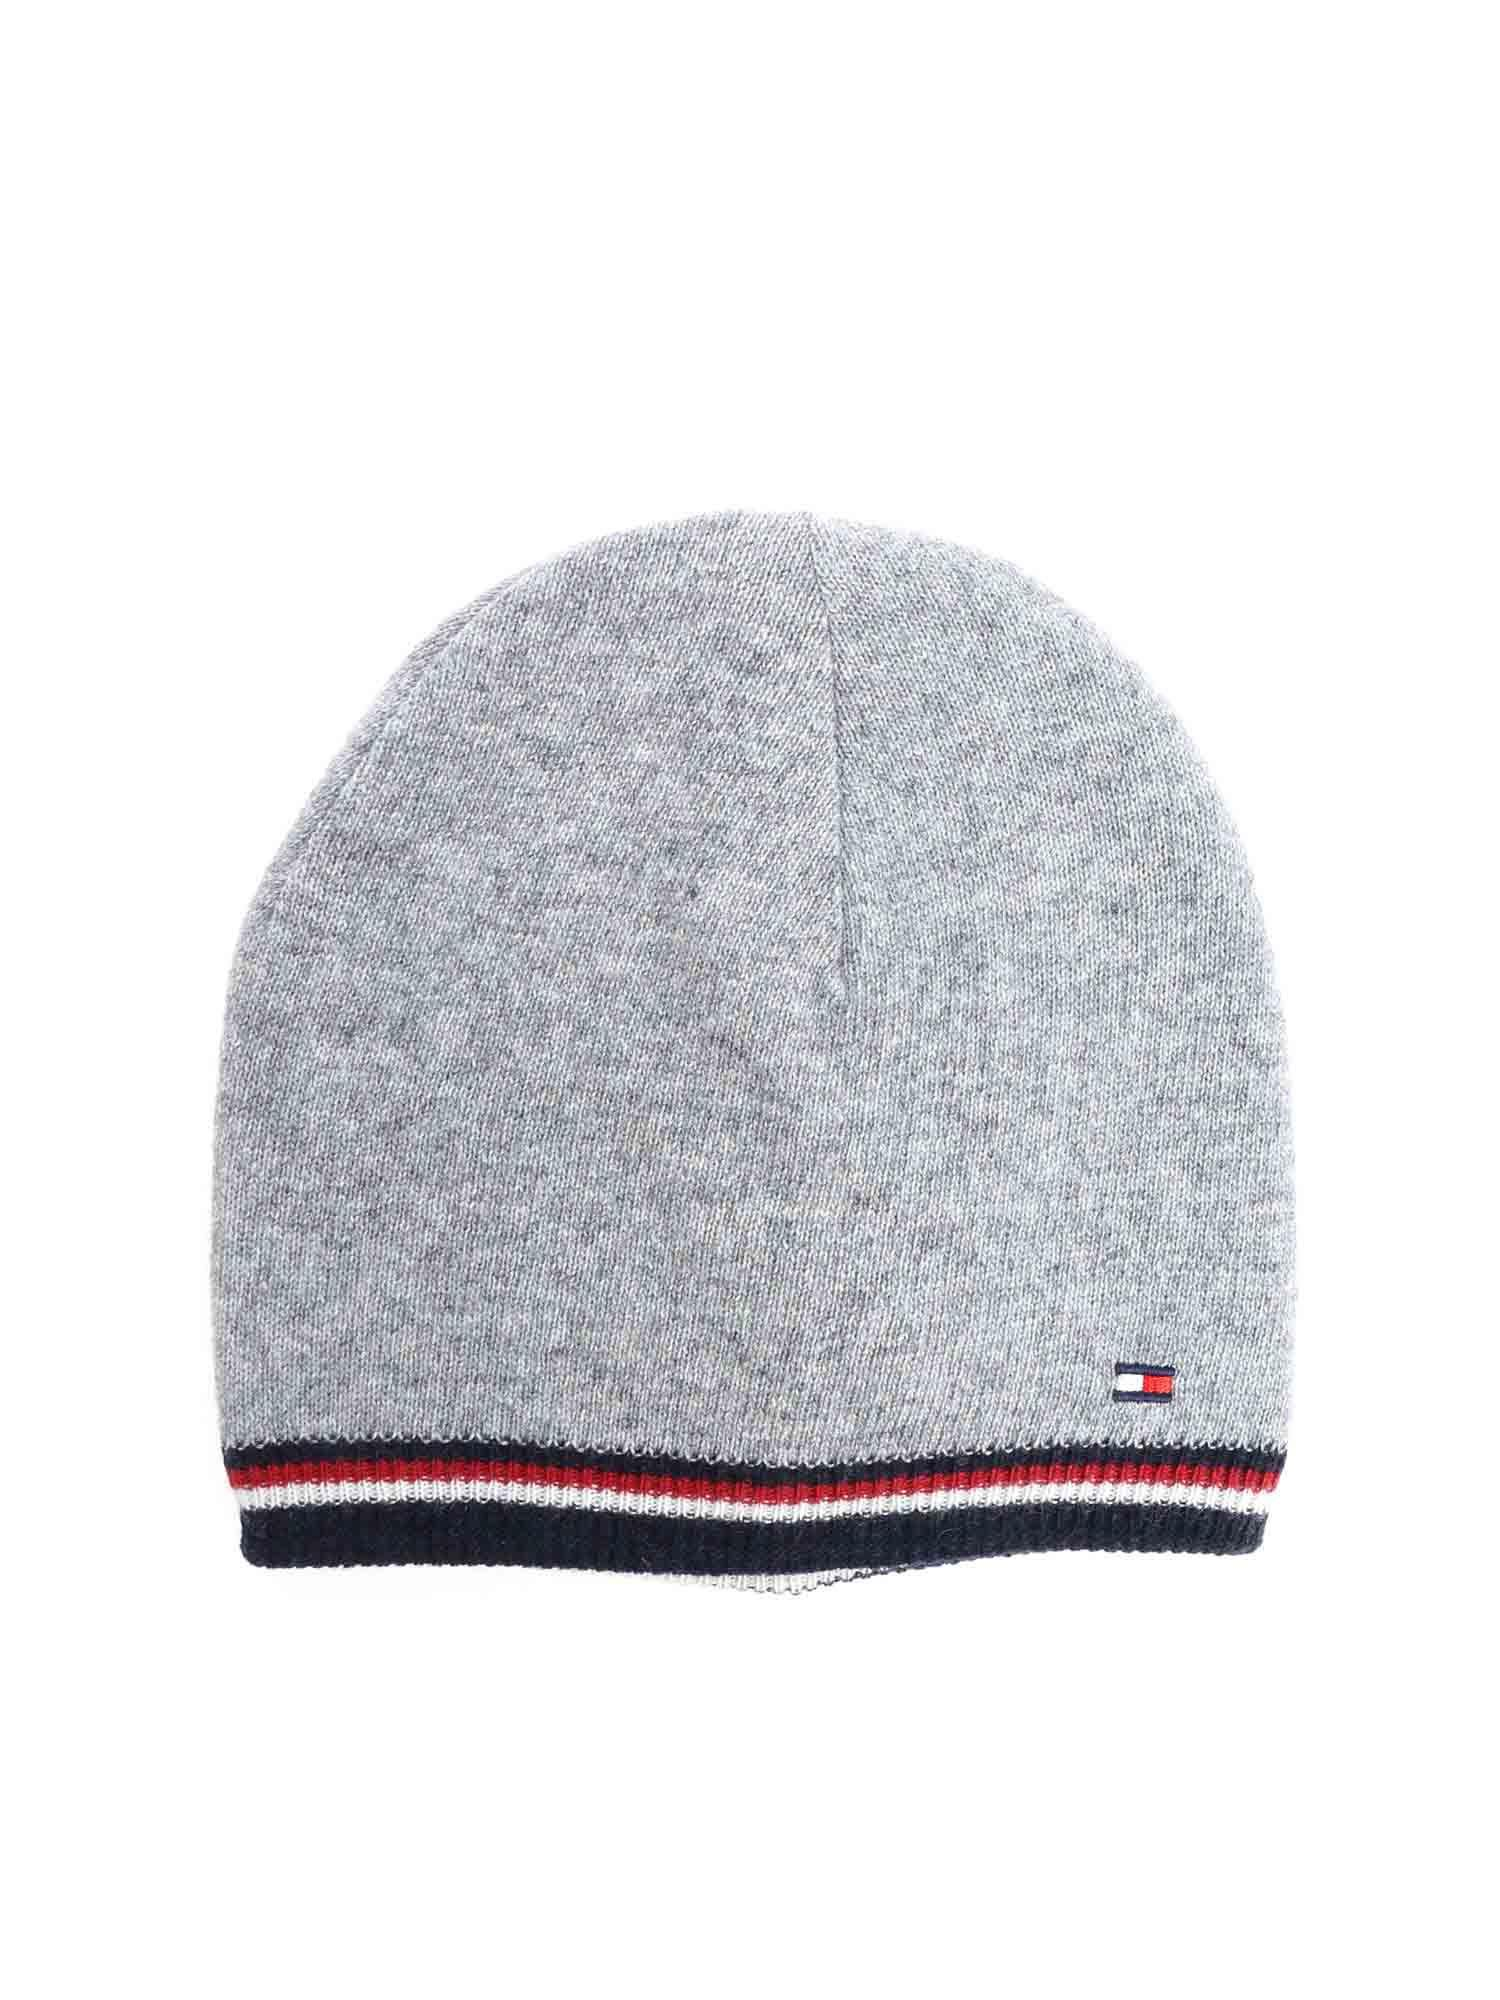 a53ad12f35b Lyst - Tommy Hilfiger Reversible Gray Beanie in Gray